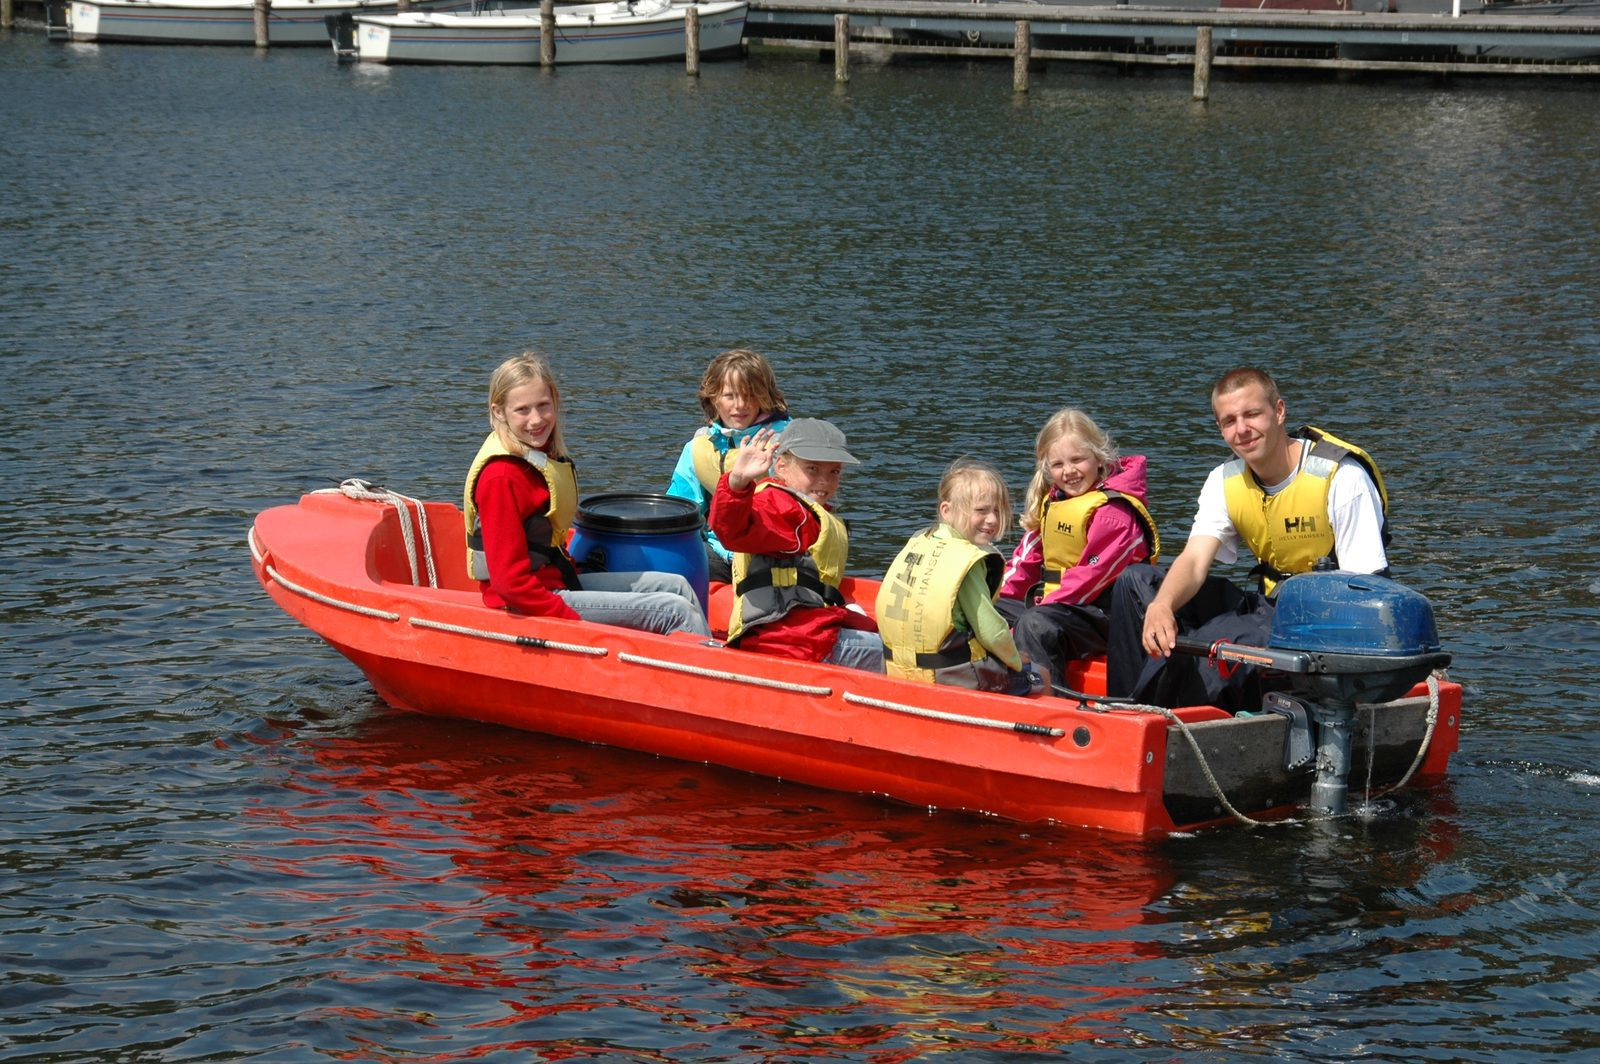 Water sports center Poort van Amsterdam